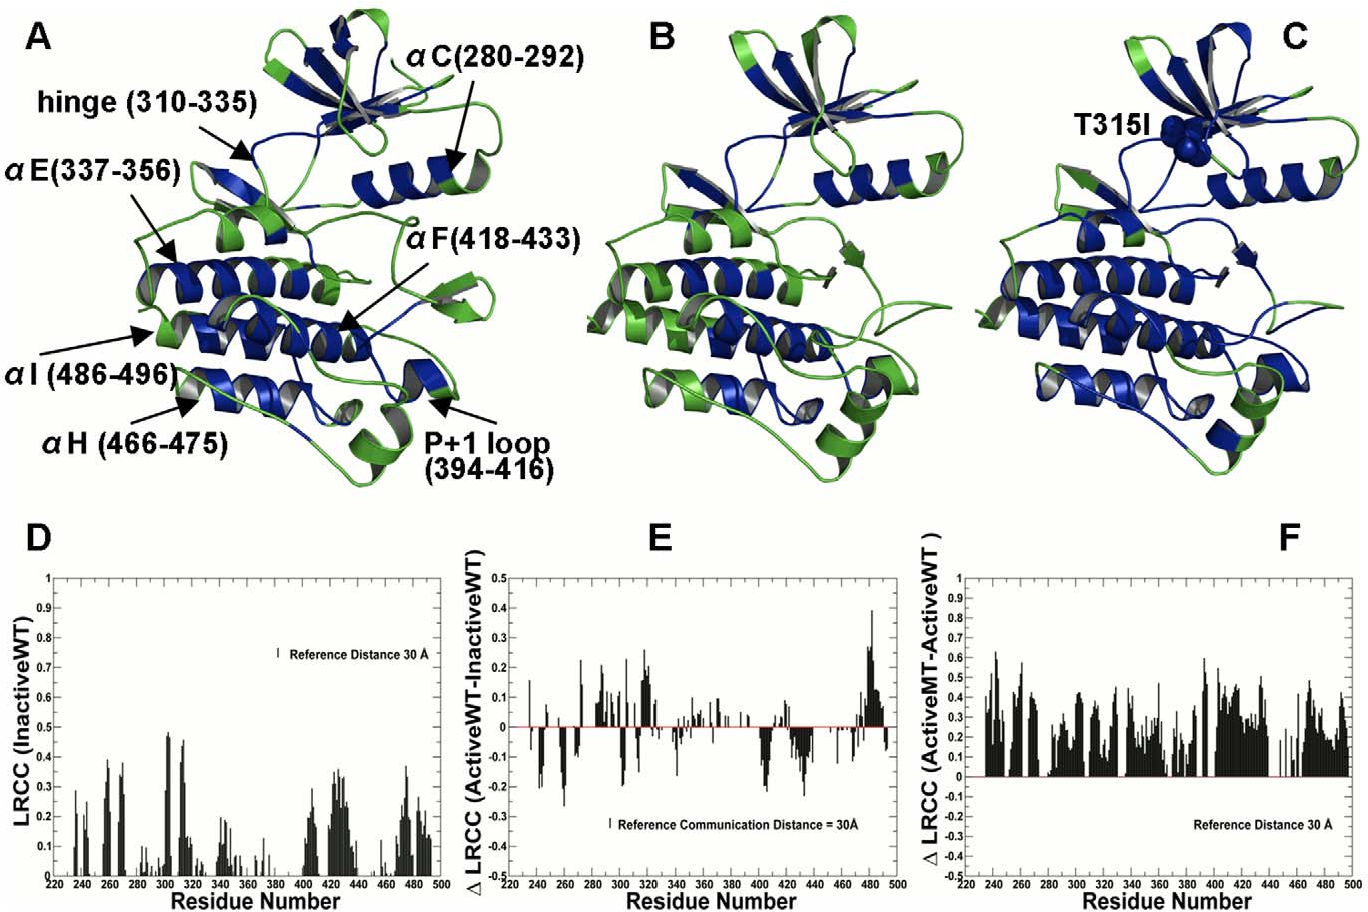 Figure 1. Structural Mapping of Allosteric Communication Profiles in the ABL Kinase Catalytic Domain. Structural mapping of residues involved in long-range communication in different functional states of the ABL catalytic domain: (A) the inactive ABL-WT structure (PDB ID 1IEP); (B) the active ABL-WT structure (PDB ID 1M52); (C) the active form of the ABL-T315I mutant (PDB ID 2Z60). The catalytic core is shown in green. The highlighted in blue allosterically coupled clusters correspond to the peaks in the residue-based LRCC profile computed with the reference communication threshold of 30 Å. The kinase segments and corresponding residue ranges are indicated by respective arrows. (D) The absolute LRCC values of the inactive ABL-WT form. (E) The relative LRCC values between the active and inactive ABL-WT forms. (F) The relative LRCC values between the active ABL-T315I and active ABL-WT. Each bin refers to a residue and shows the fraction of residues that efficiently communicate with this particular residue at distances greater the reference communication threshold of 30 Å. doi:10.1371/journal.pcbi.1002179.g001